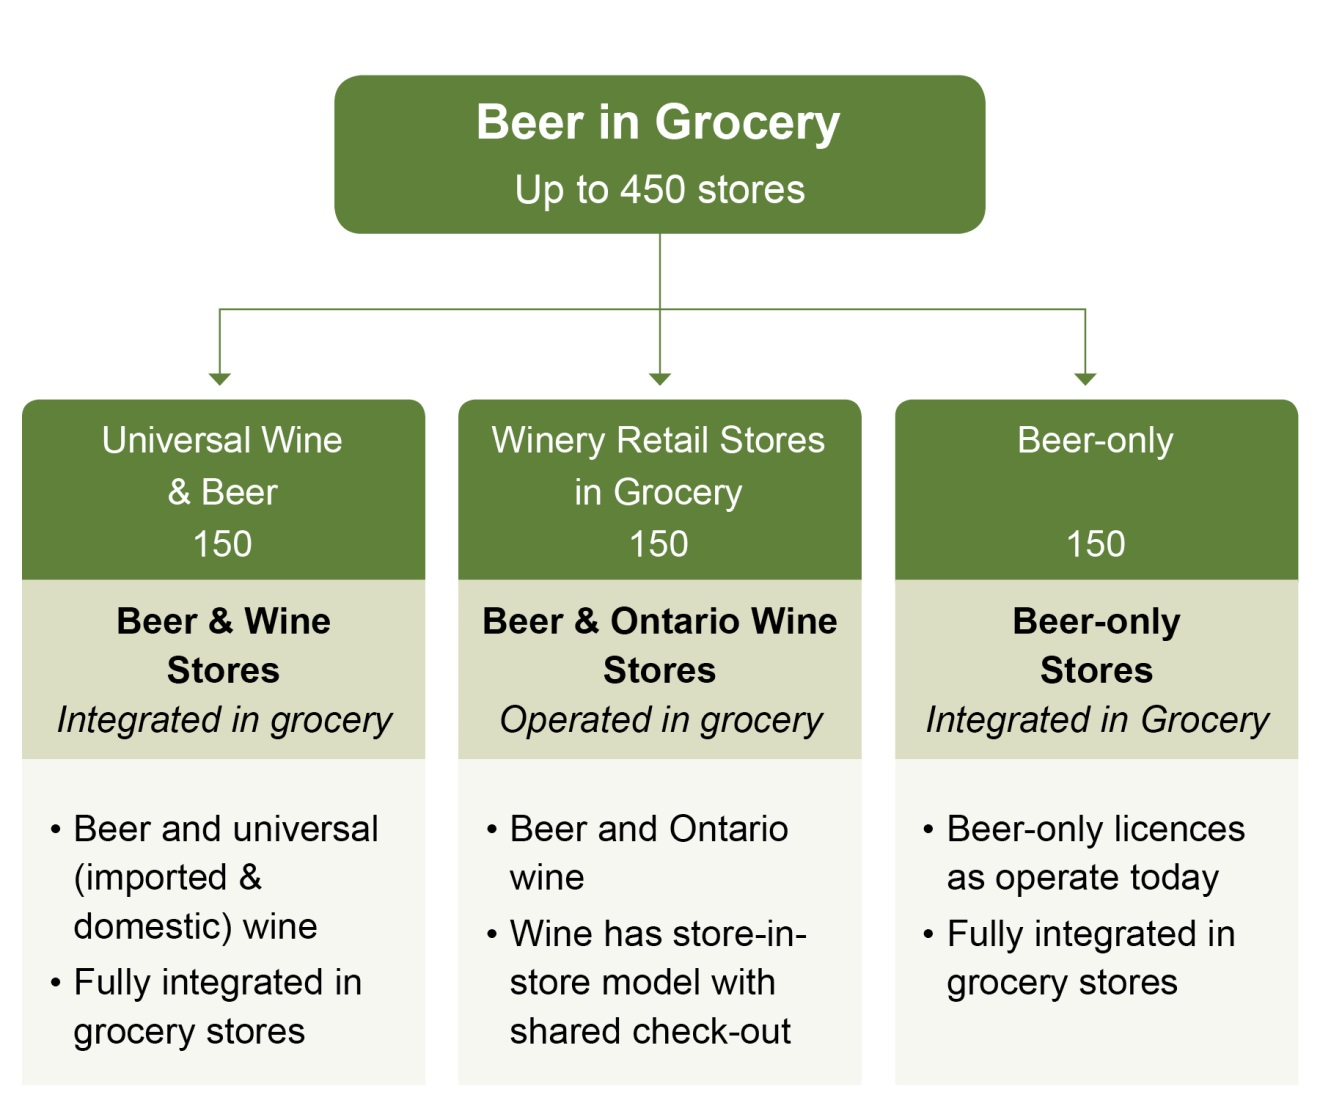 5ee82311e1a6 This image shows that there will be a total of up to 450 grocery stores  selling